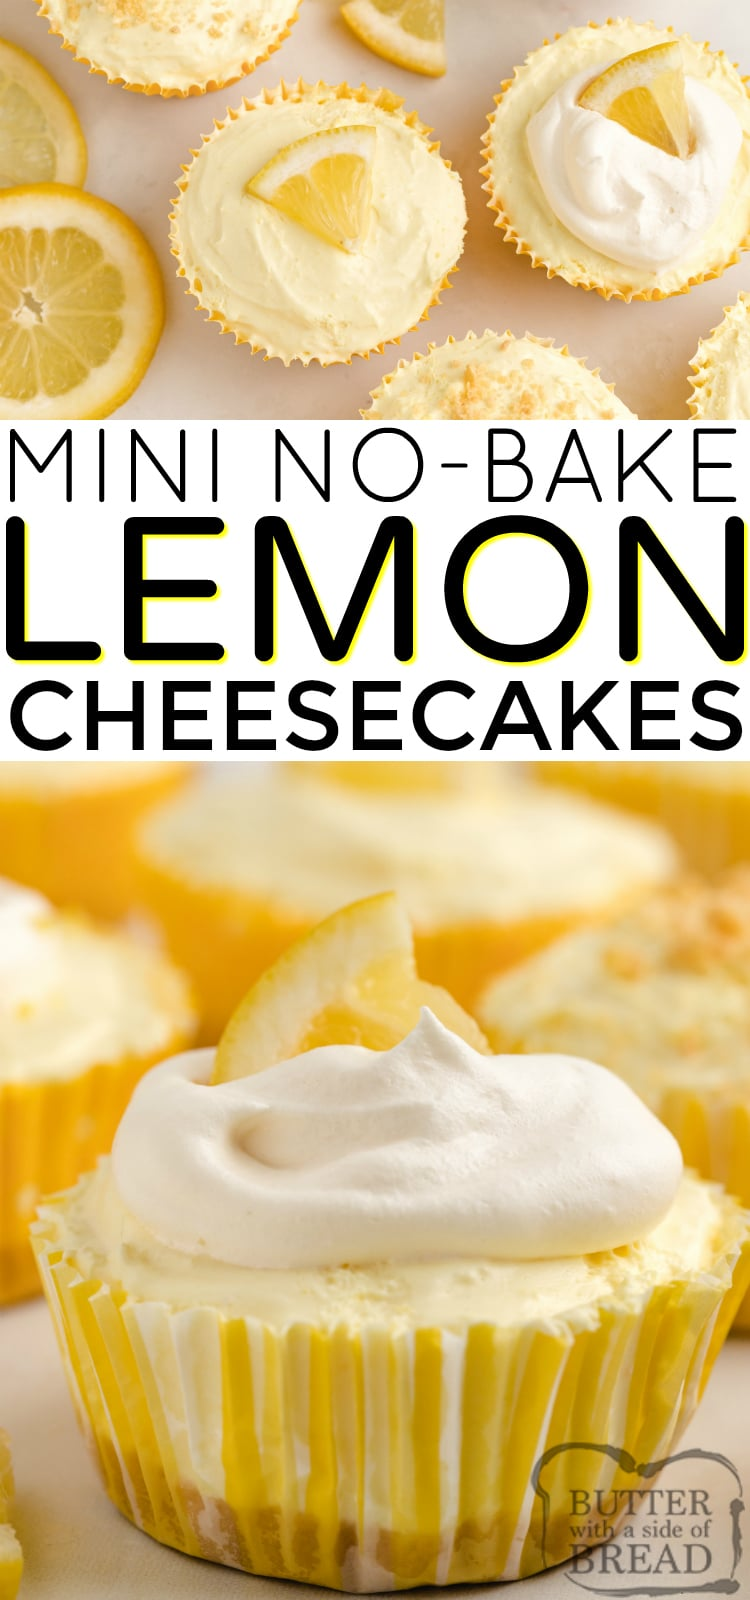 No Bake Mini Lemon Cheesecakes made with Lemon Oreos and lemon pudding are delicious! This easy no bake cheesecake recipe made with only 6 ingredients is the perfect summer dessert!